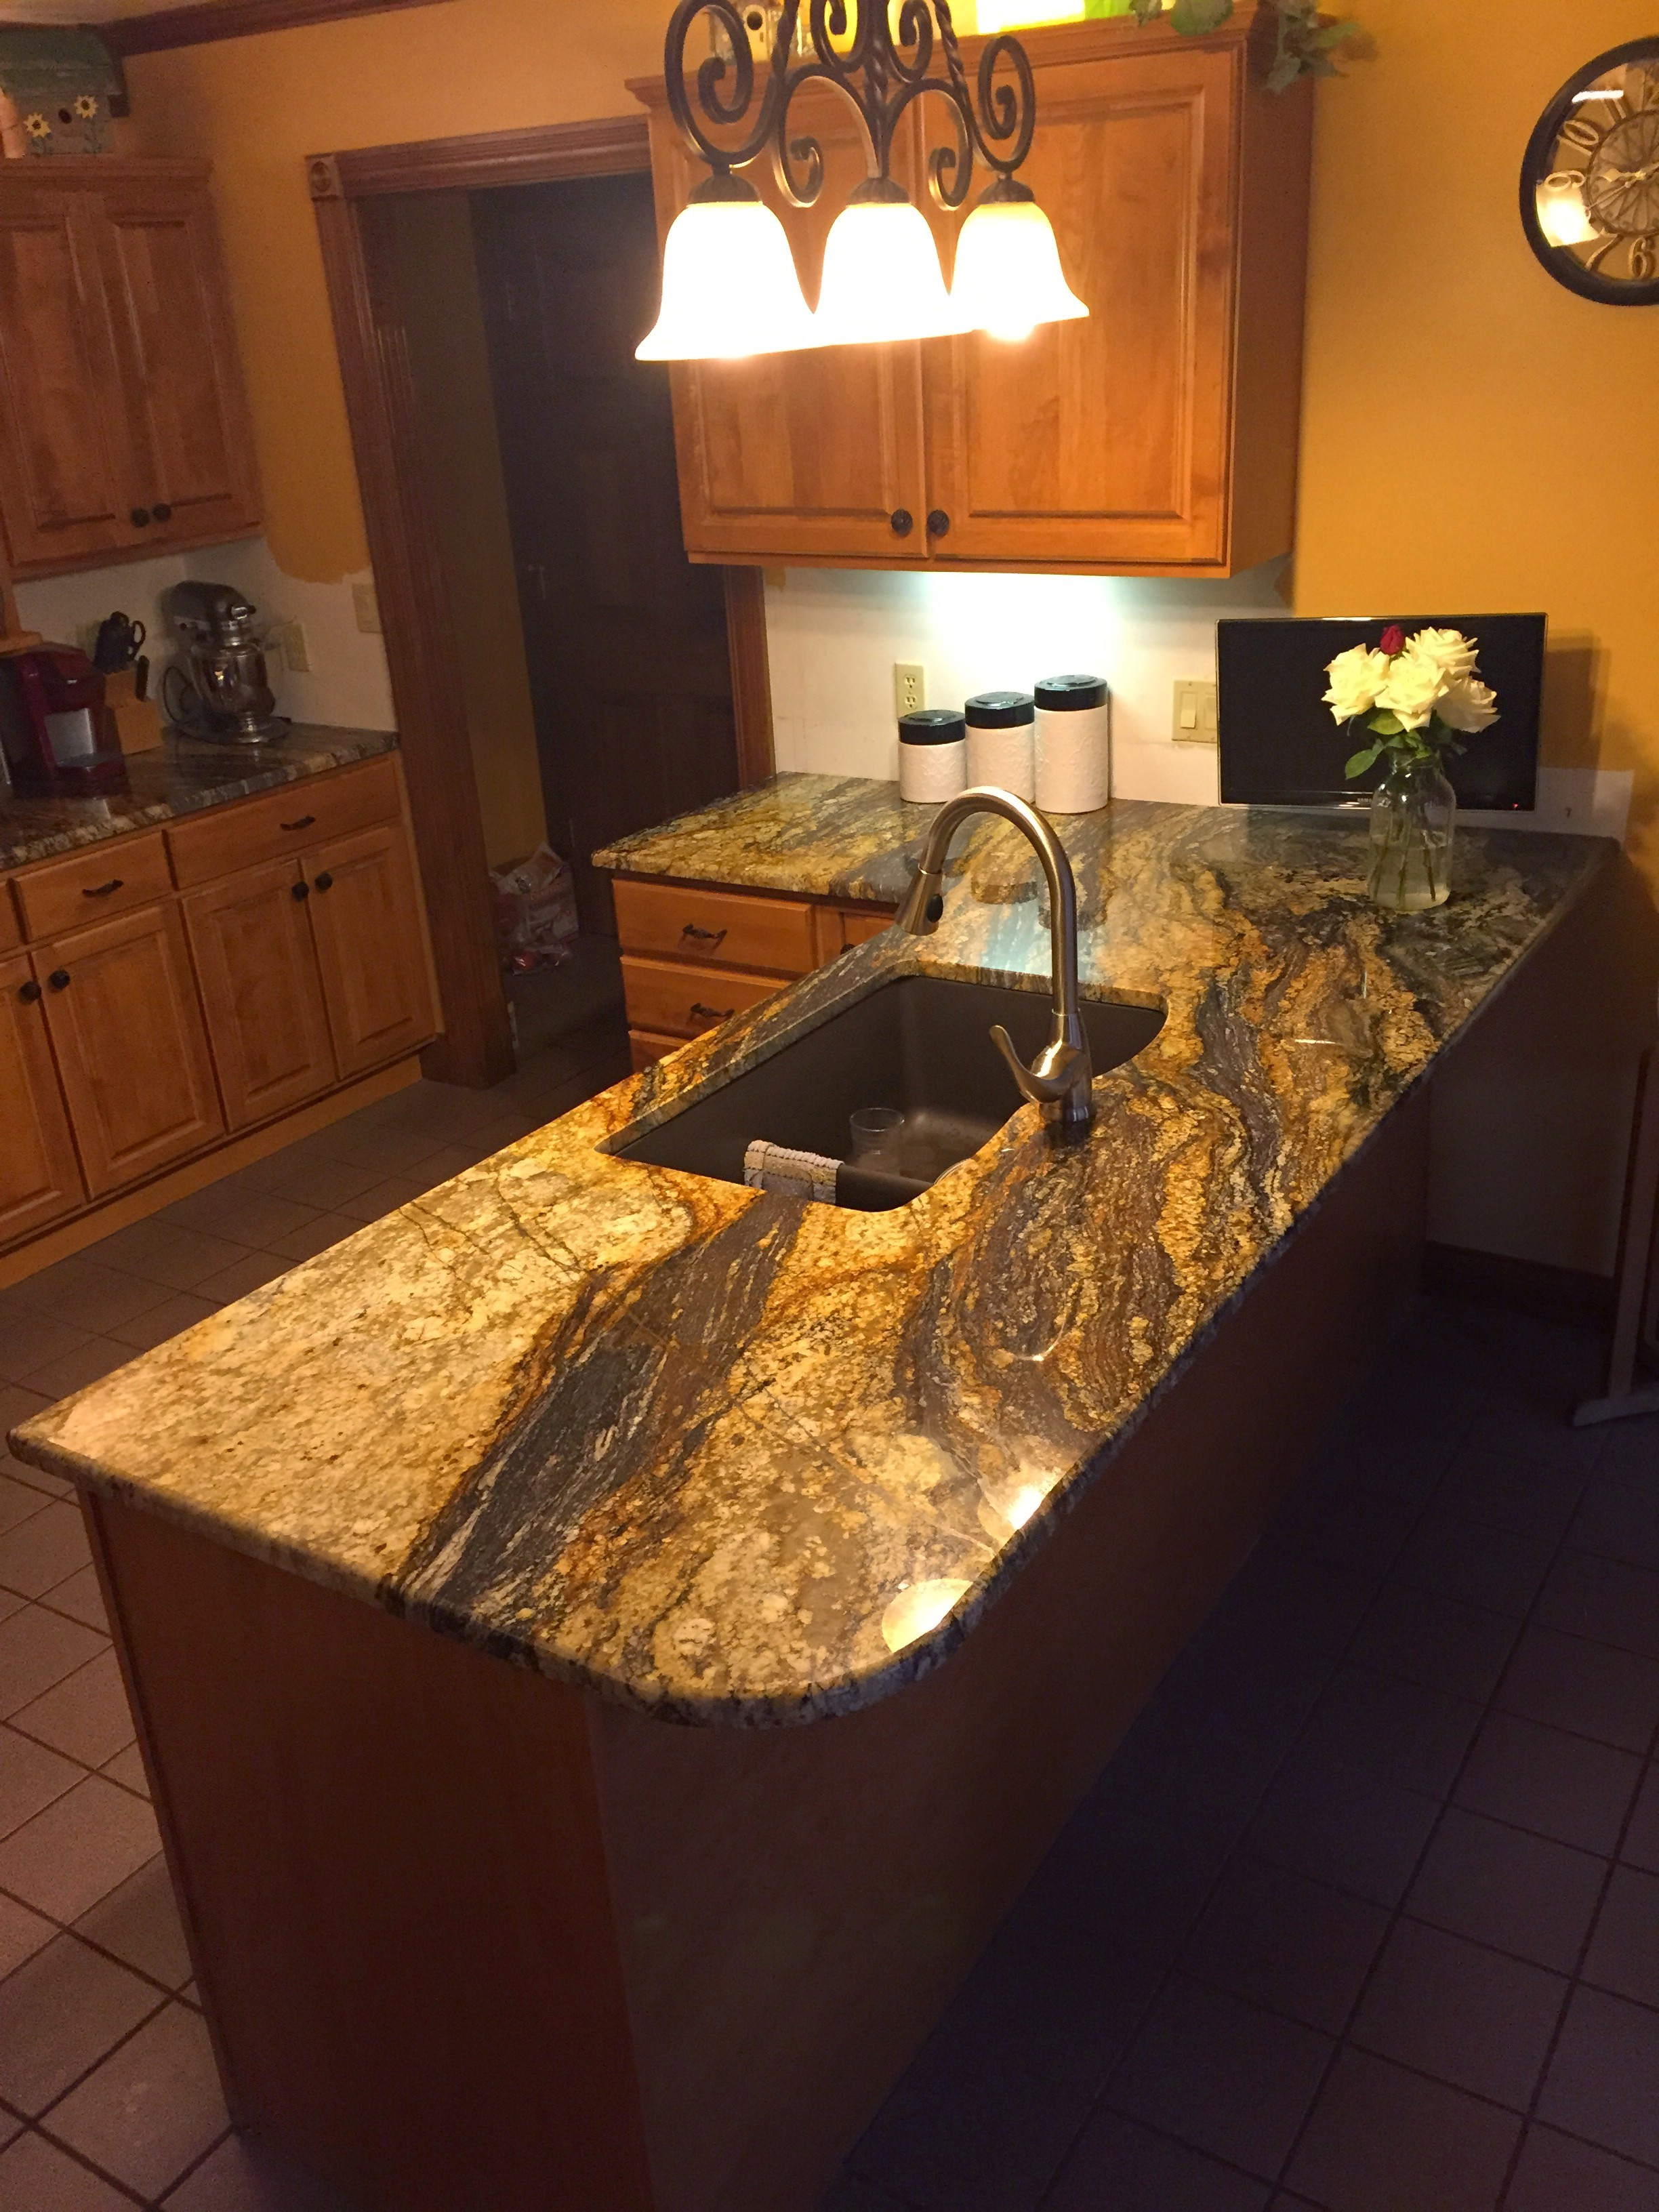 Affordable Granite And Marble 3508 Camp Ground Rd, Louisville, KY 40211    YP.com